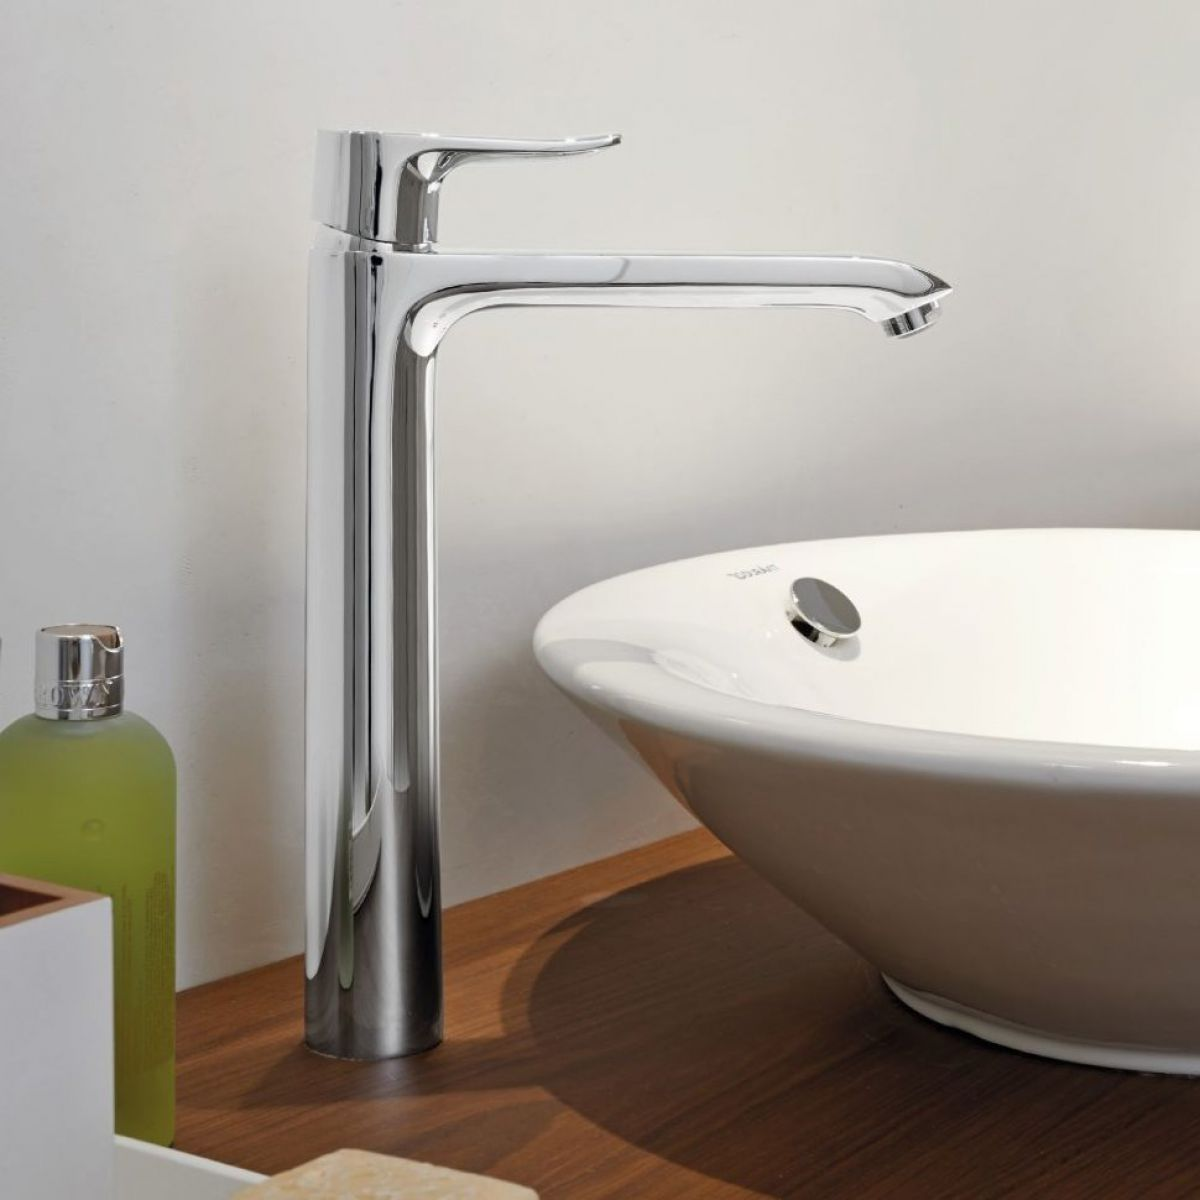 Hansgrohe Metris Basin Mixer 200 | Bathrooms Direct Yorkshire